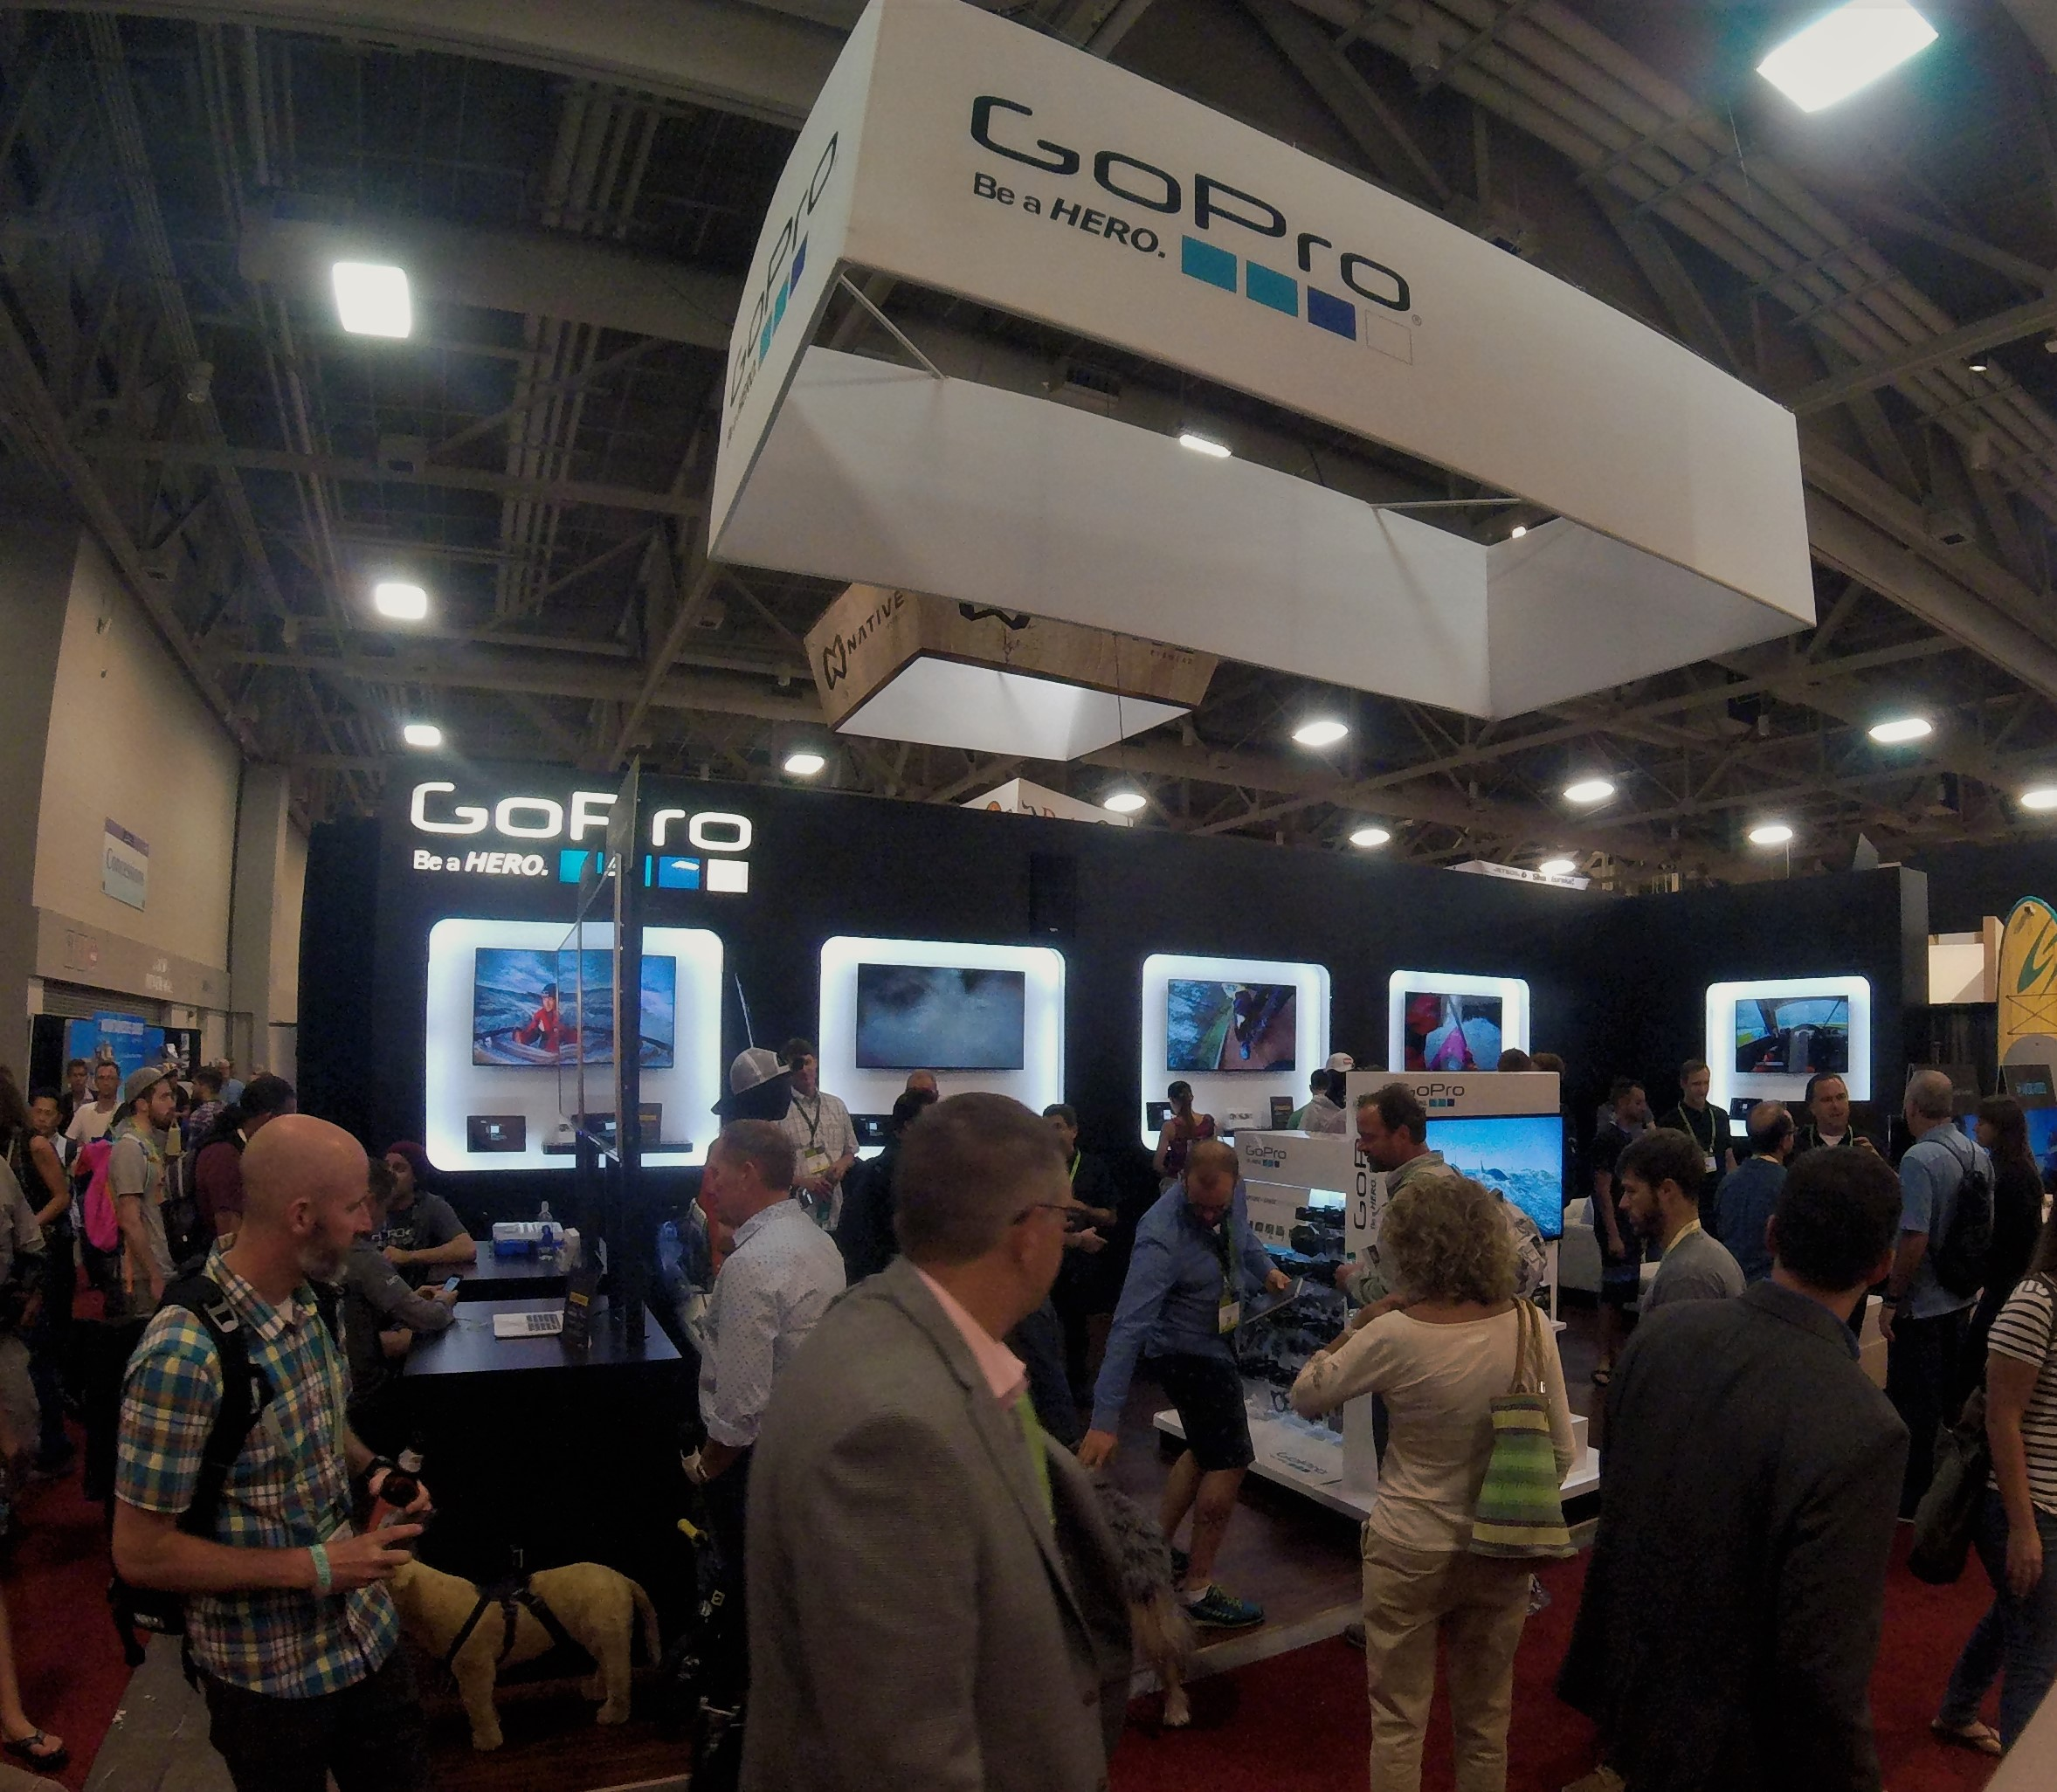 GoPro Booth stayed extremely busy with retailers checking out the new Hero4 Session.